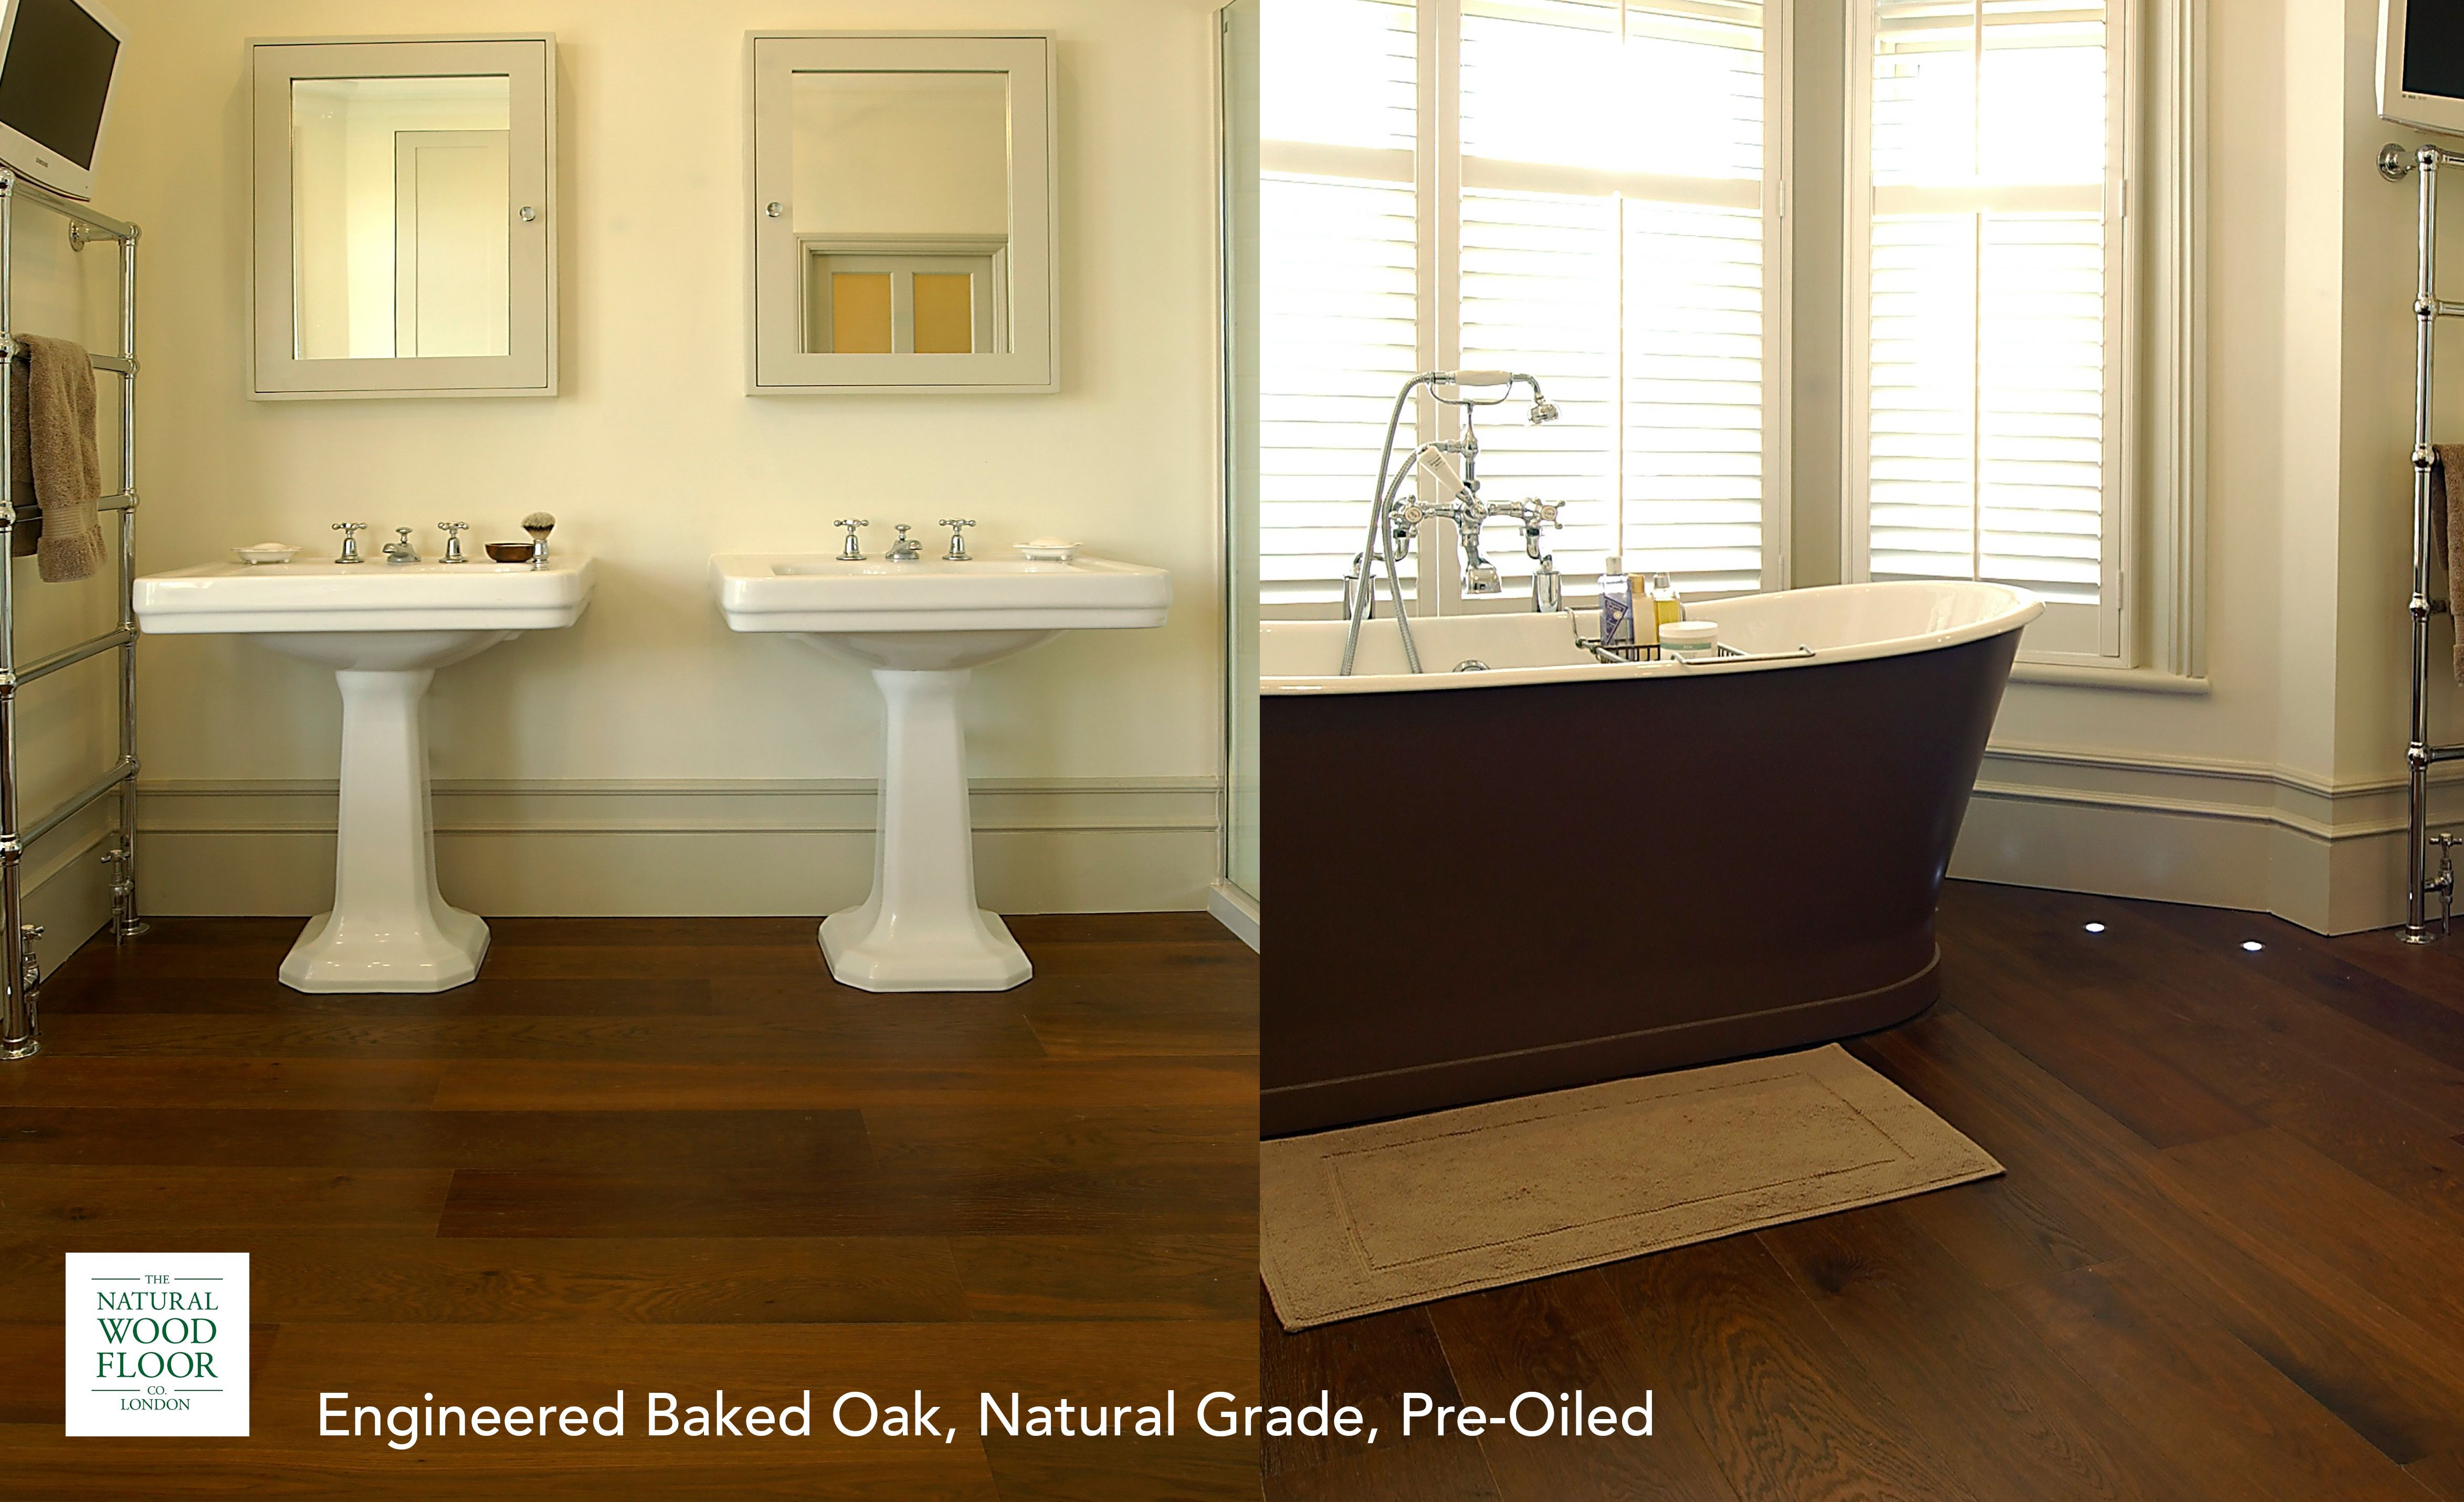 best images about bathrooms on pinterest the natural smooth